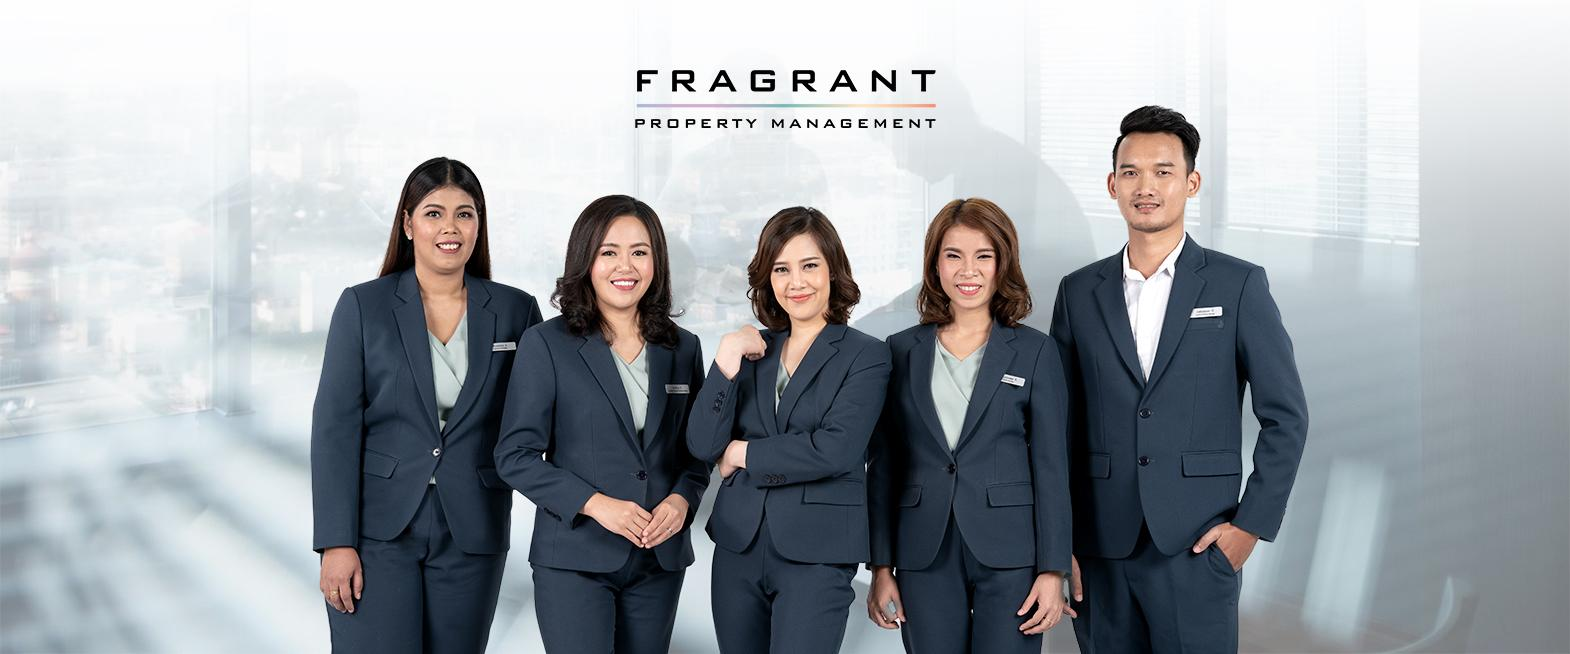 Fragrant Property Management